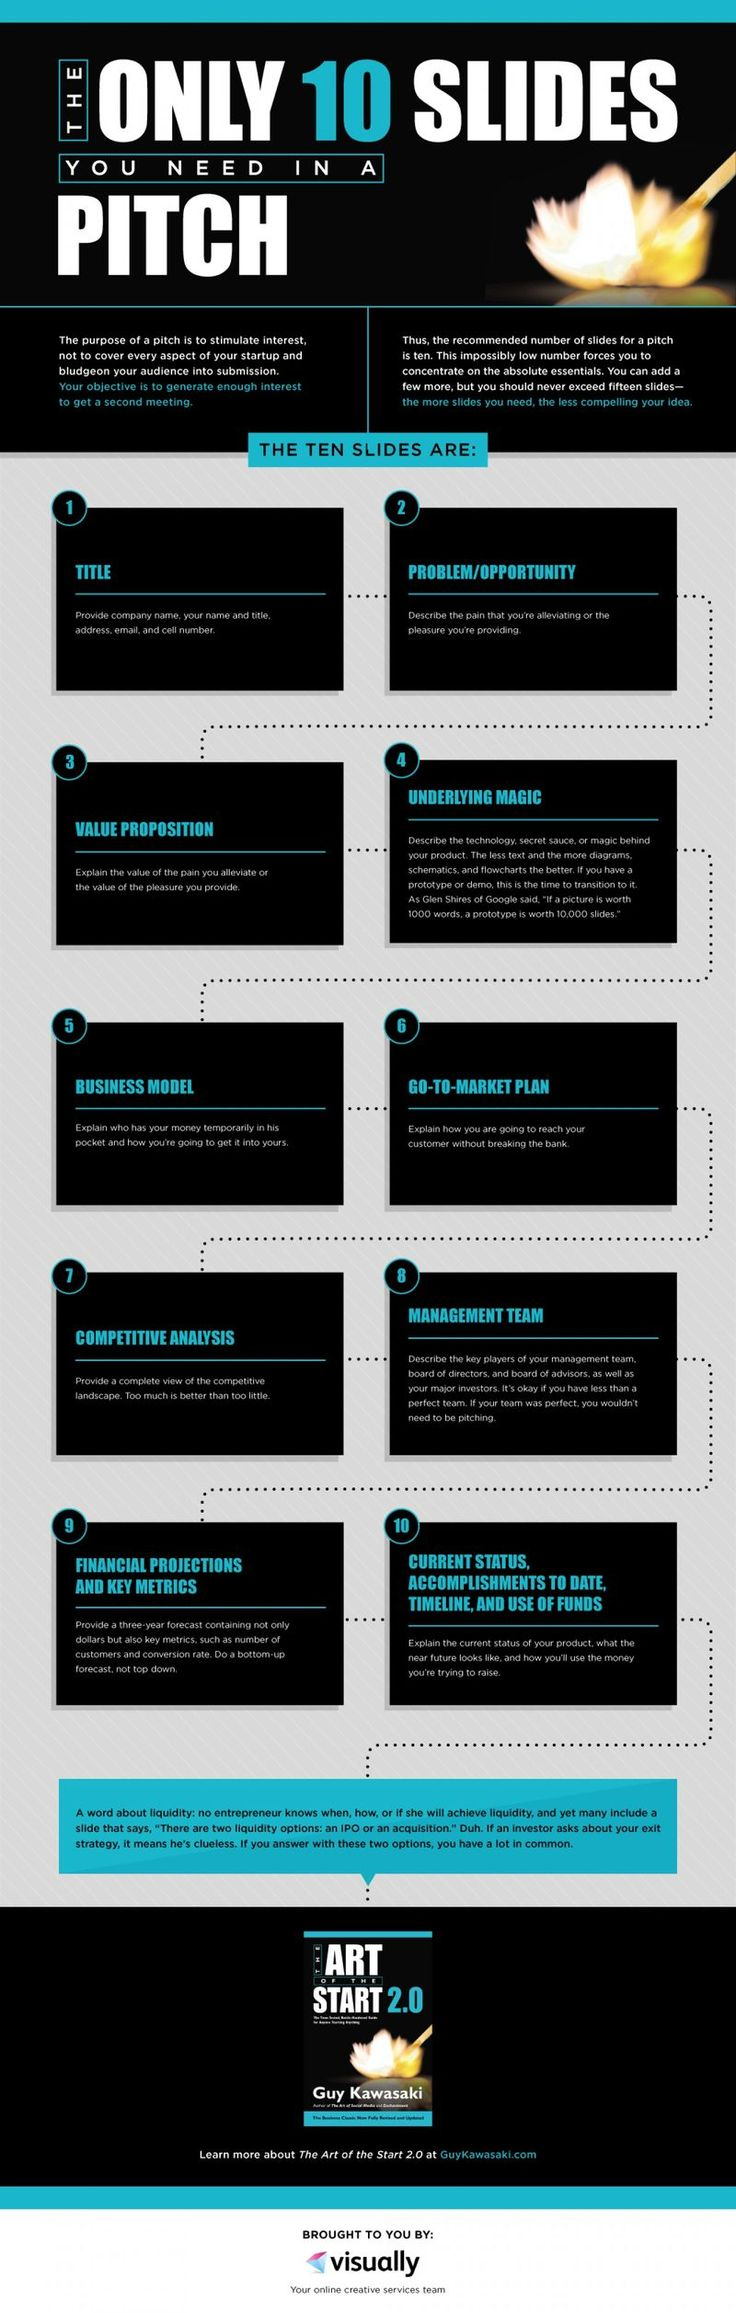 29 best images about marketing skills on pinterest